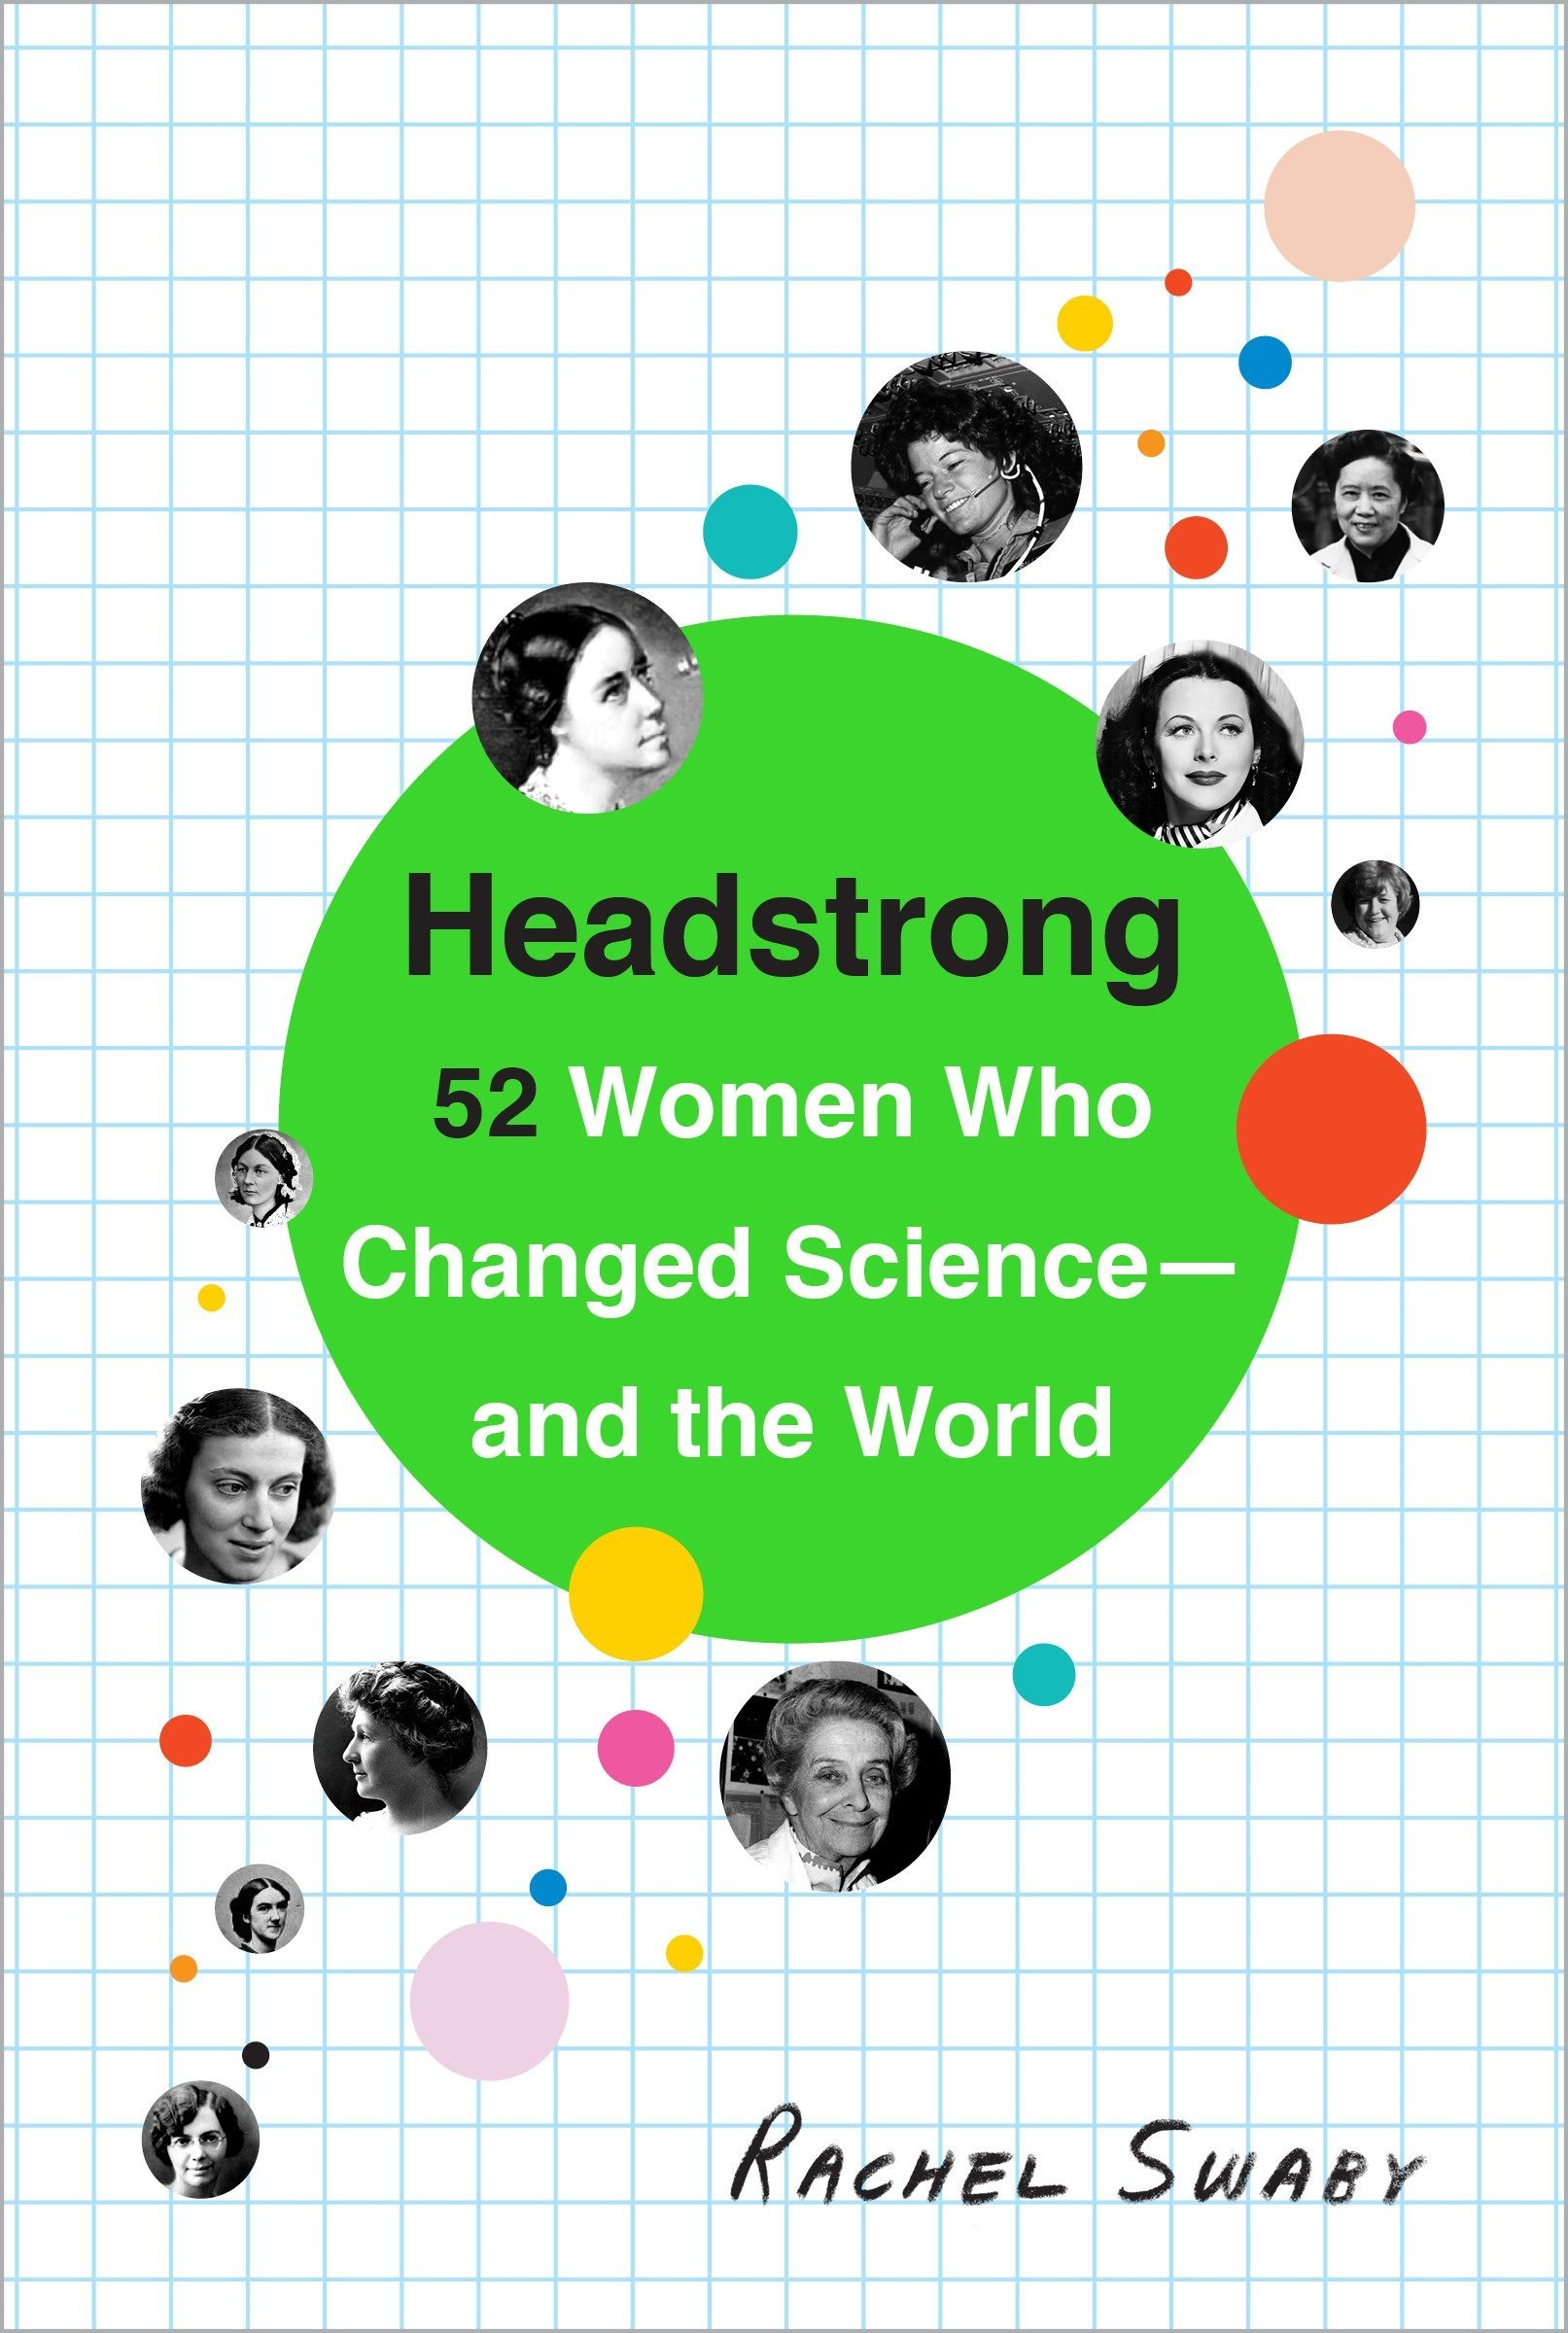 Headstrong 52 Women Who Changed Science And The World Rachel Swaby